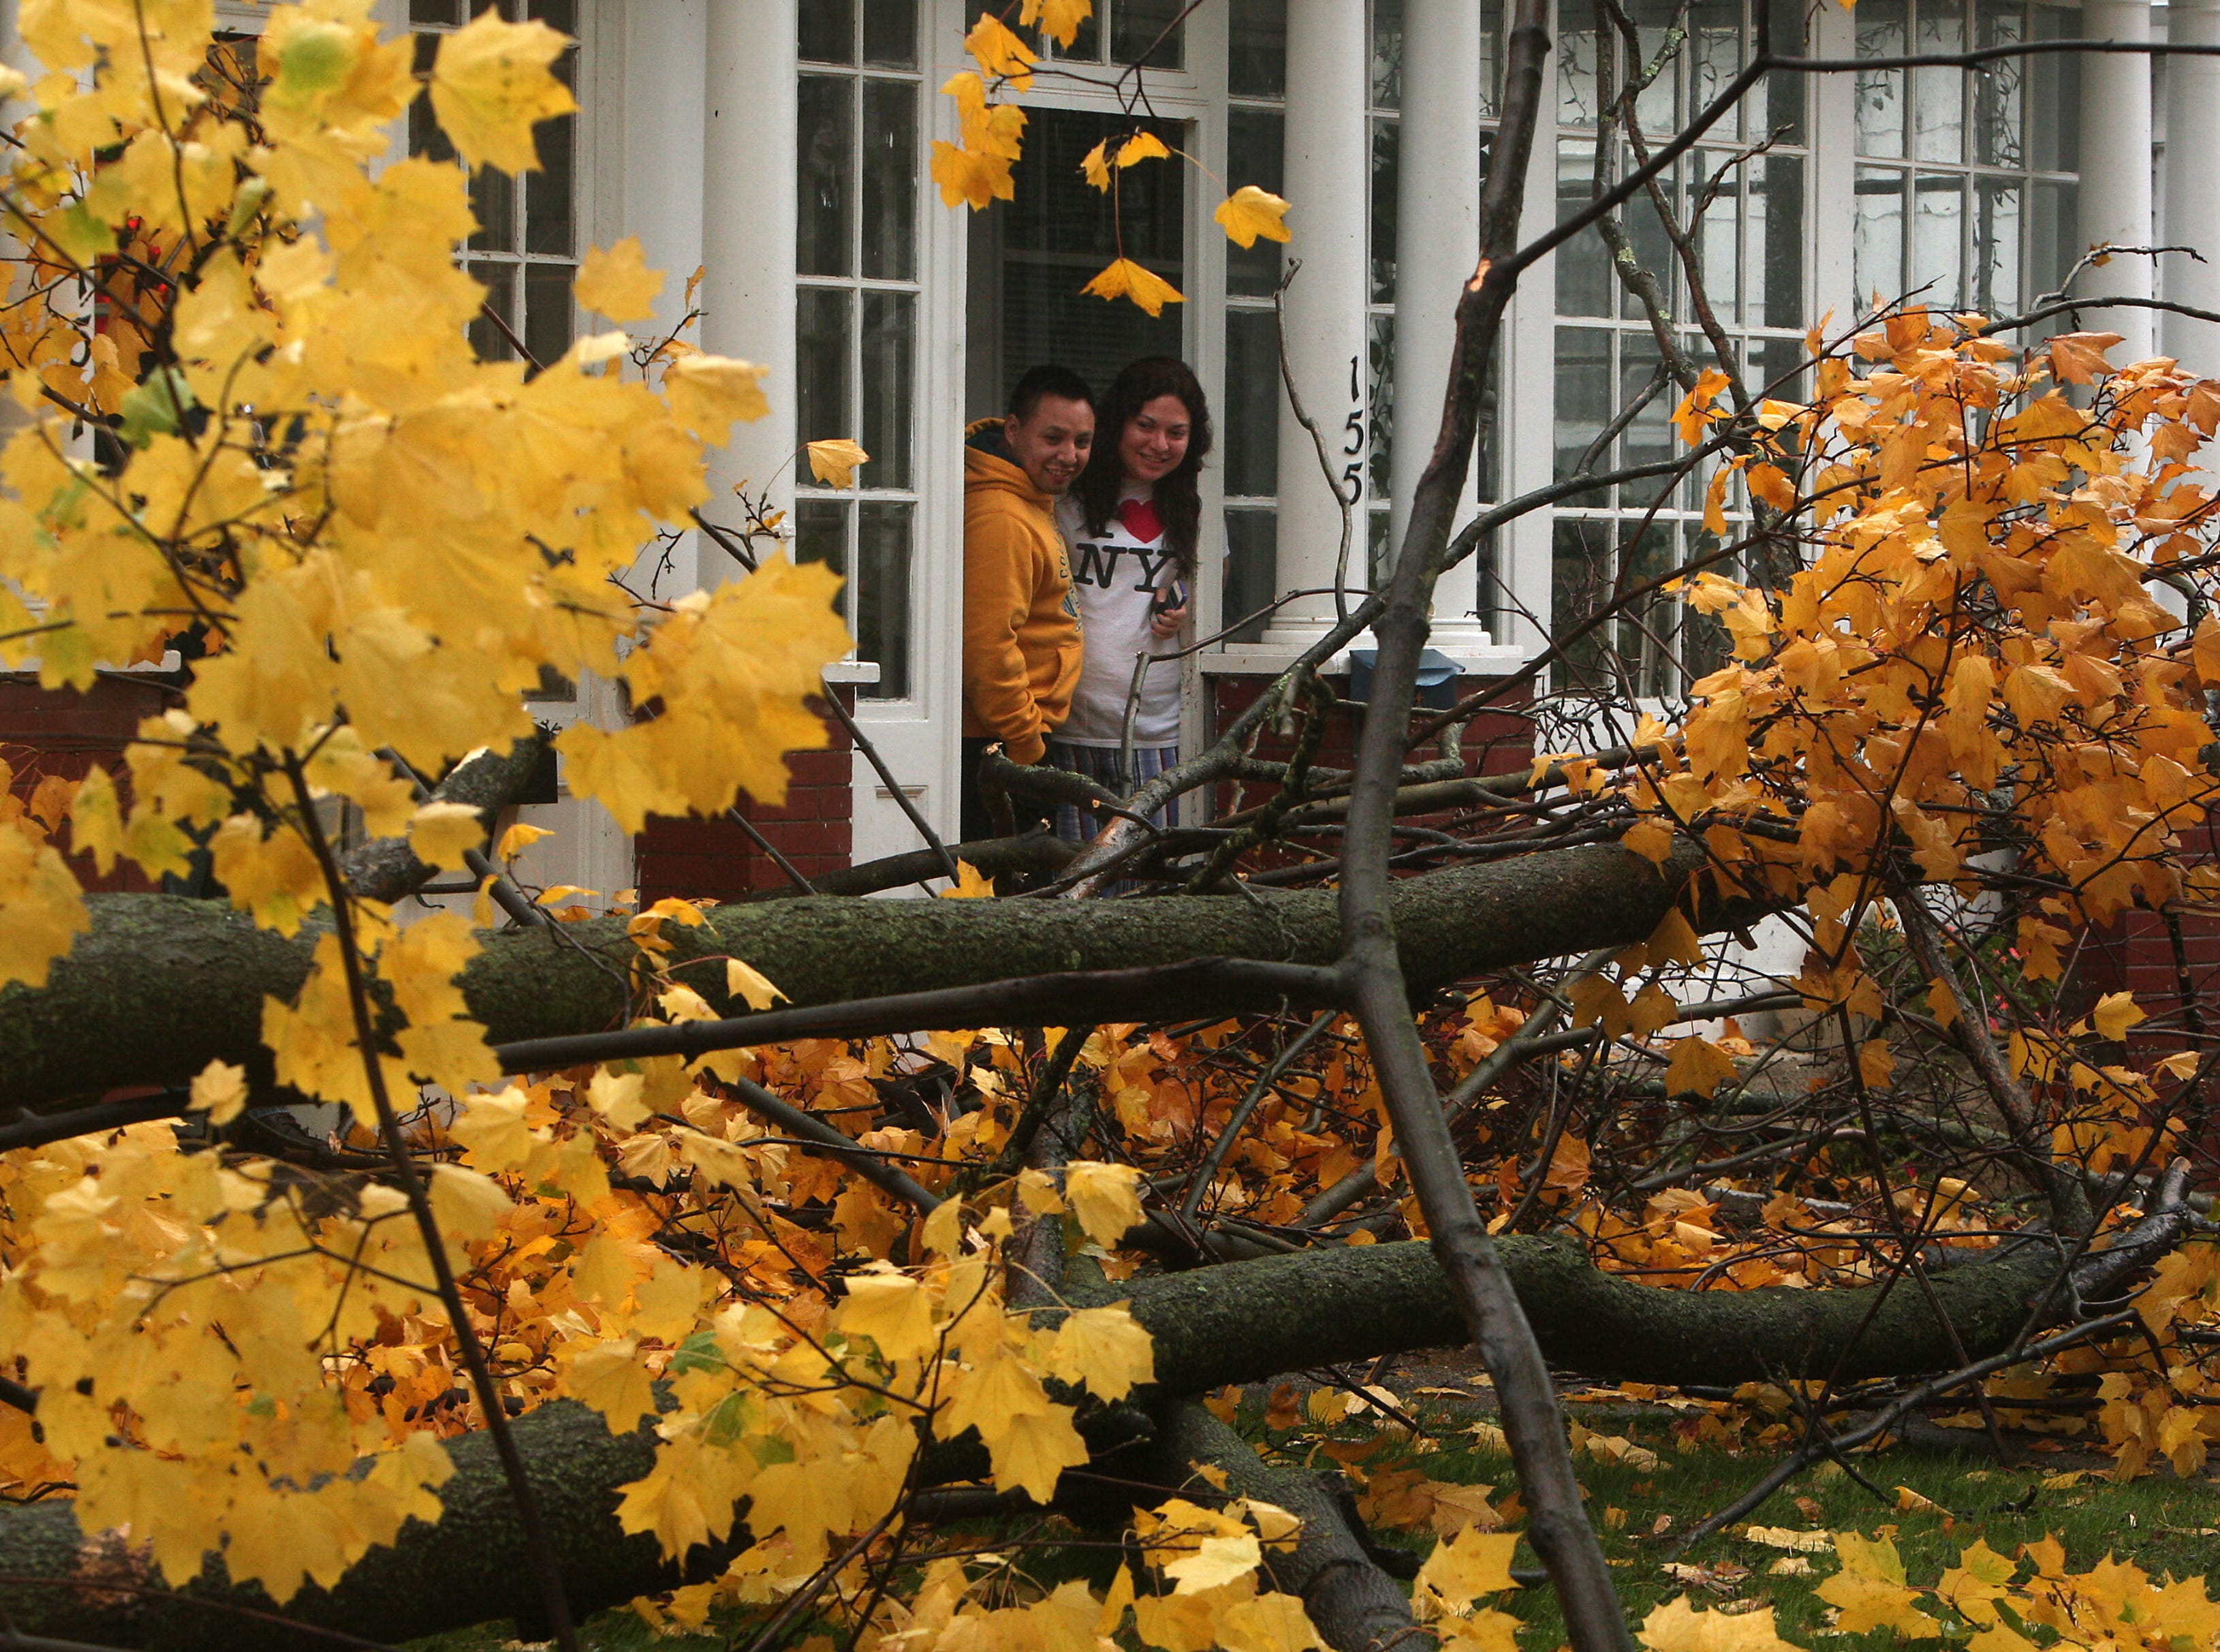 Morristown,NJ-- October 29, 2012--David Zwingle and his fiance Alejandra Juarez take a look out of their front door moments after a maple tree fell was blown down by high winds from Hurricane Sandy. 